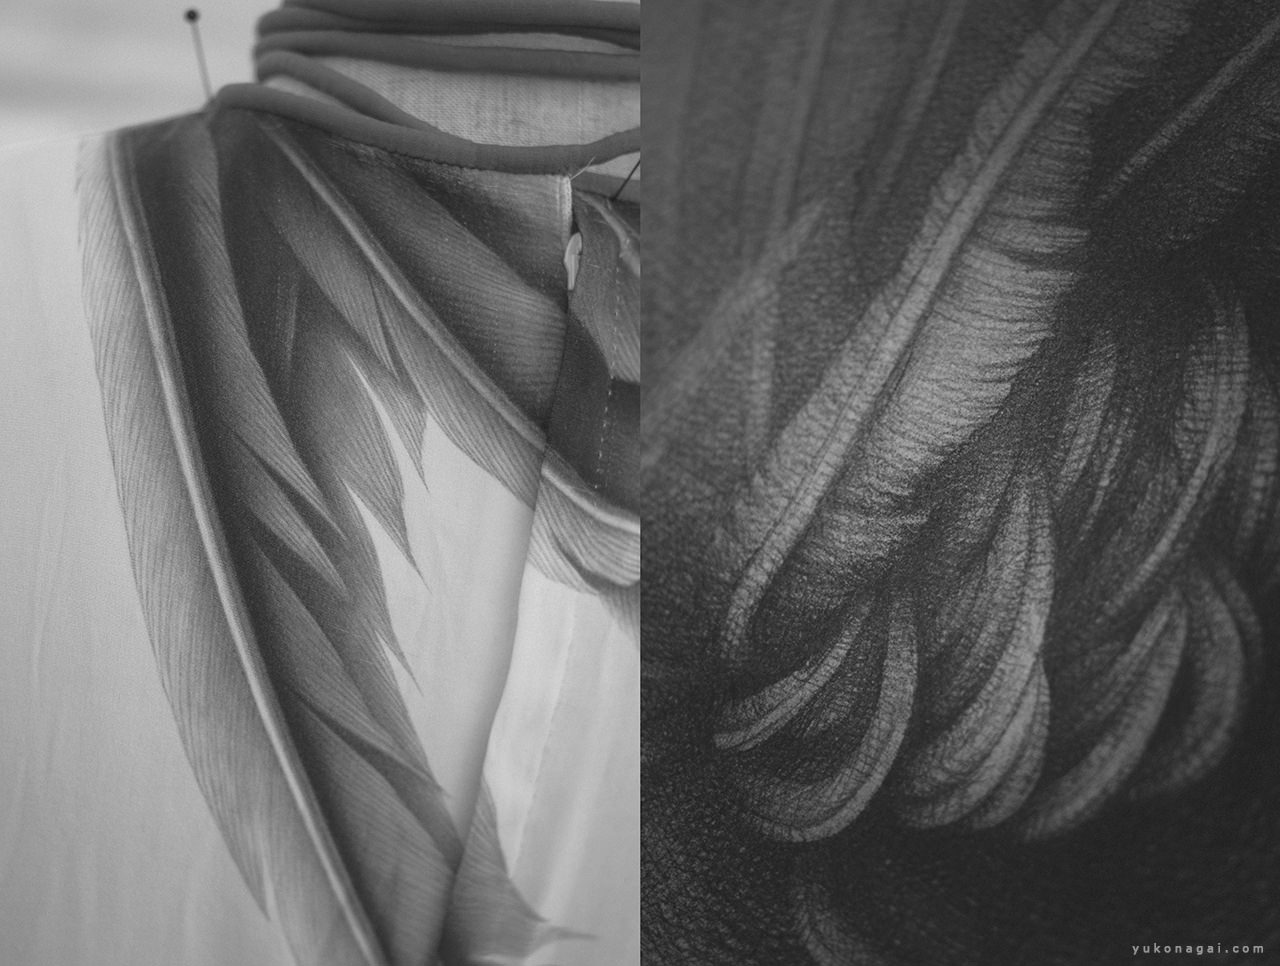 A hand painted dress with a wing drawing